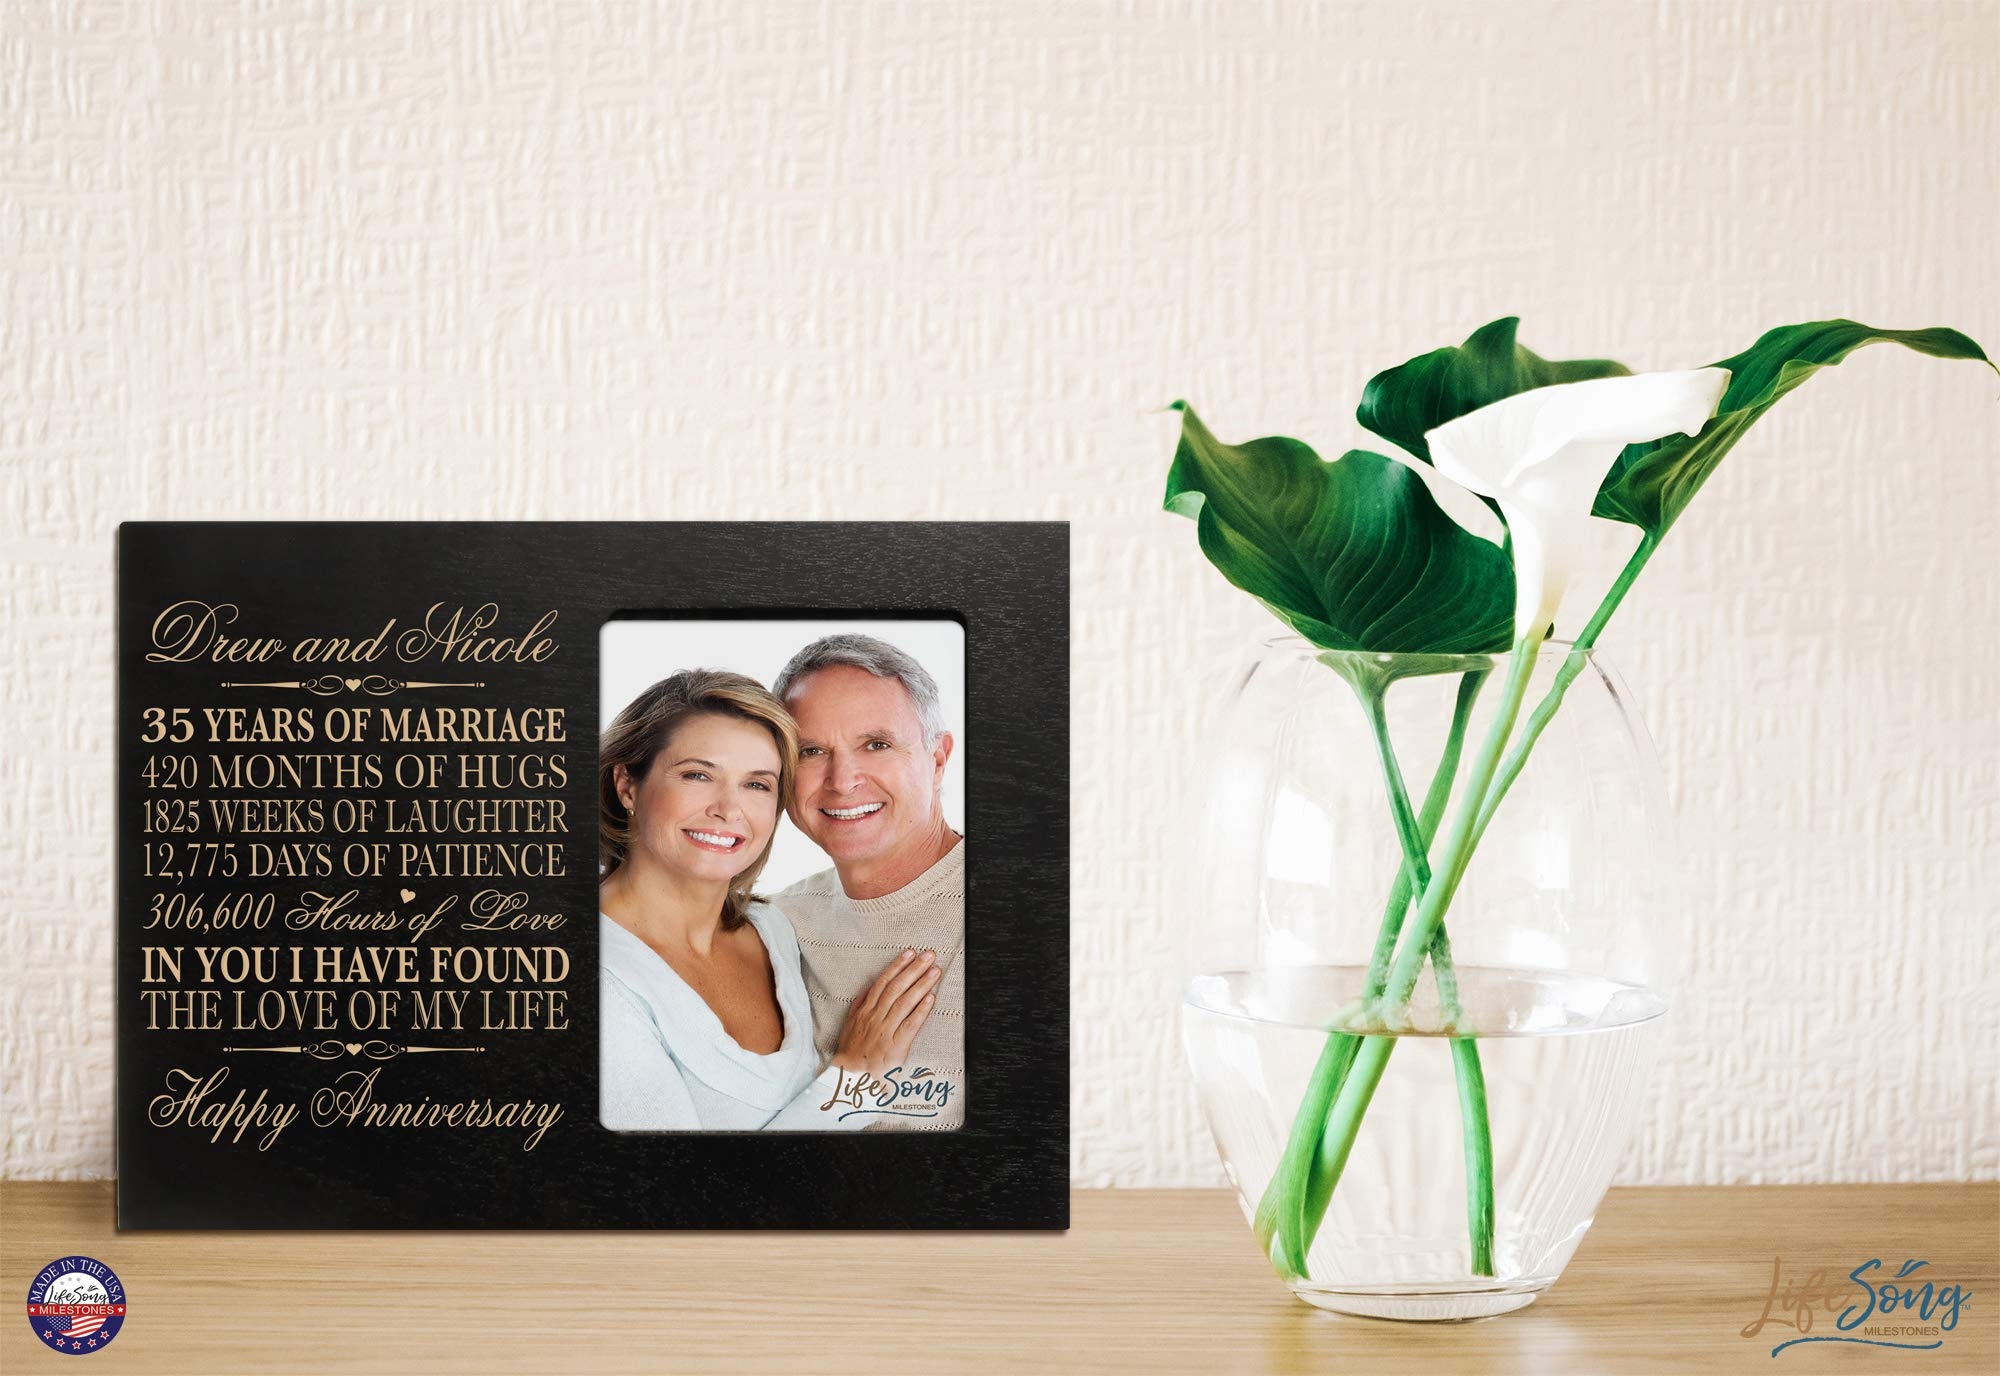 LifeSong Milestones Personalized 35th Year Wedding Anniversary Picture Frame Gift for Couple 35th for Her 35th Wedding for Him Photo Frame Holds 1 4x6 Photo 8'' H X 10'' W (Black) by LifeSong Milestones (Image #4)